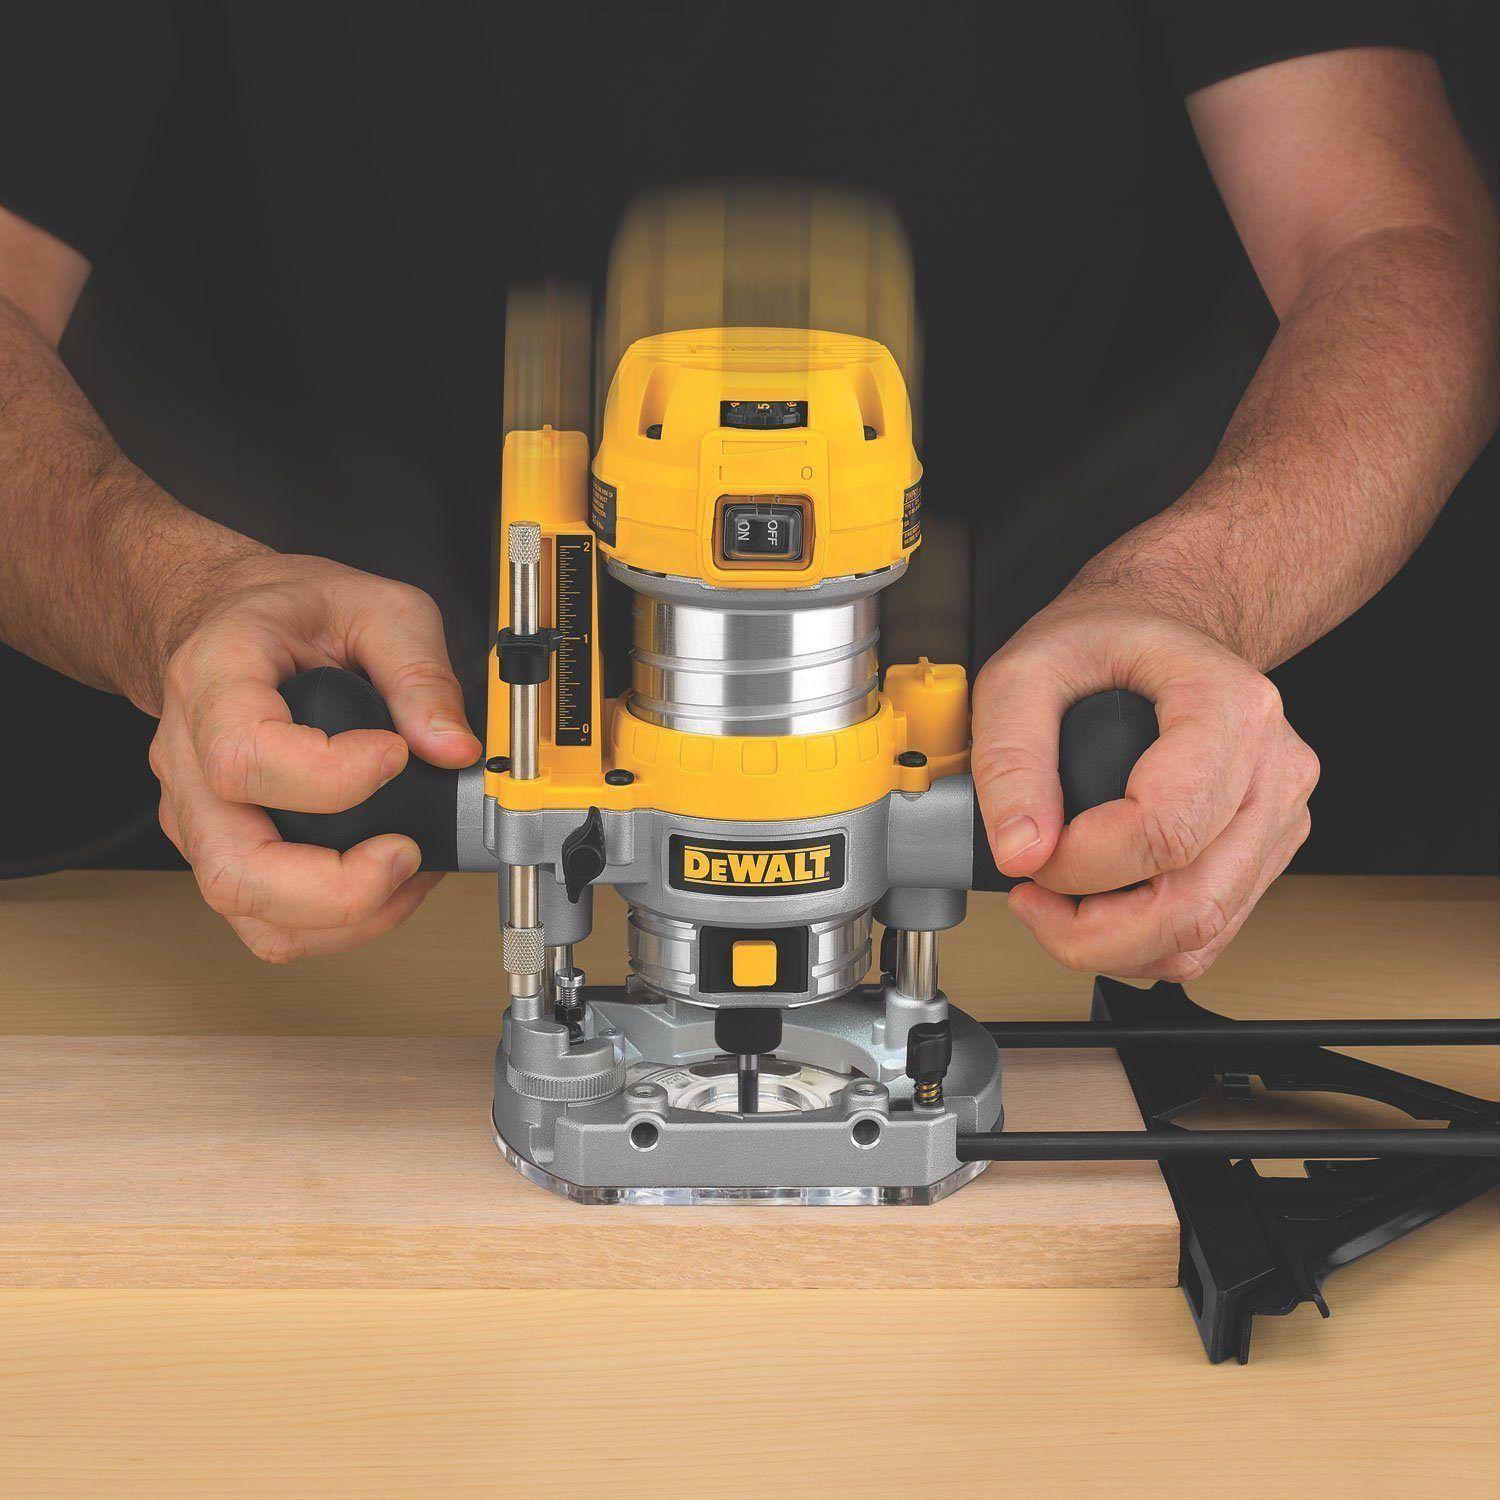 Best Wood Router Reviews in 2021